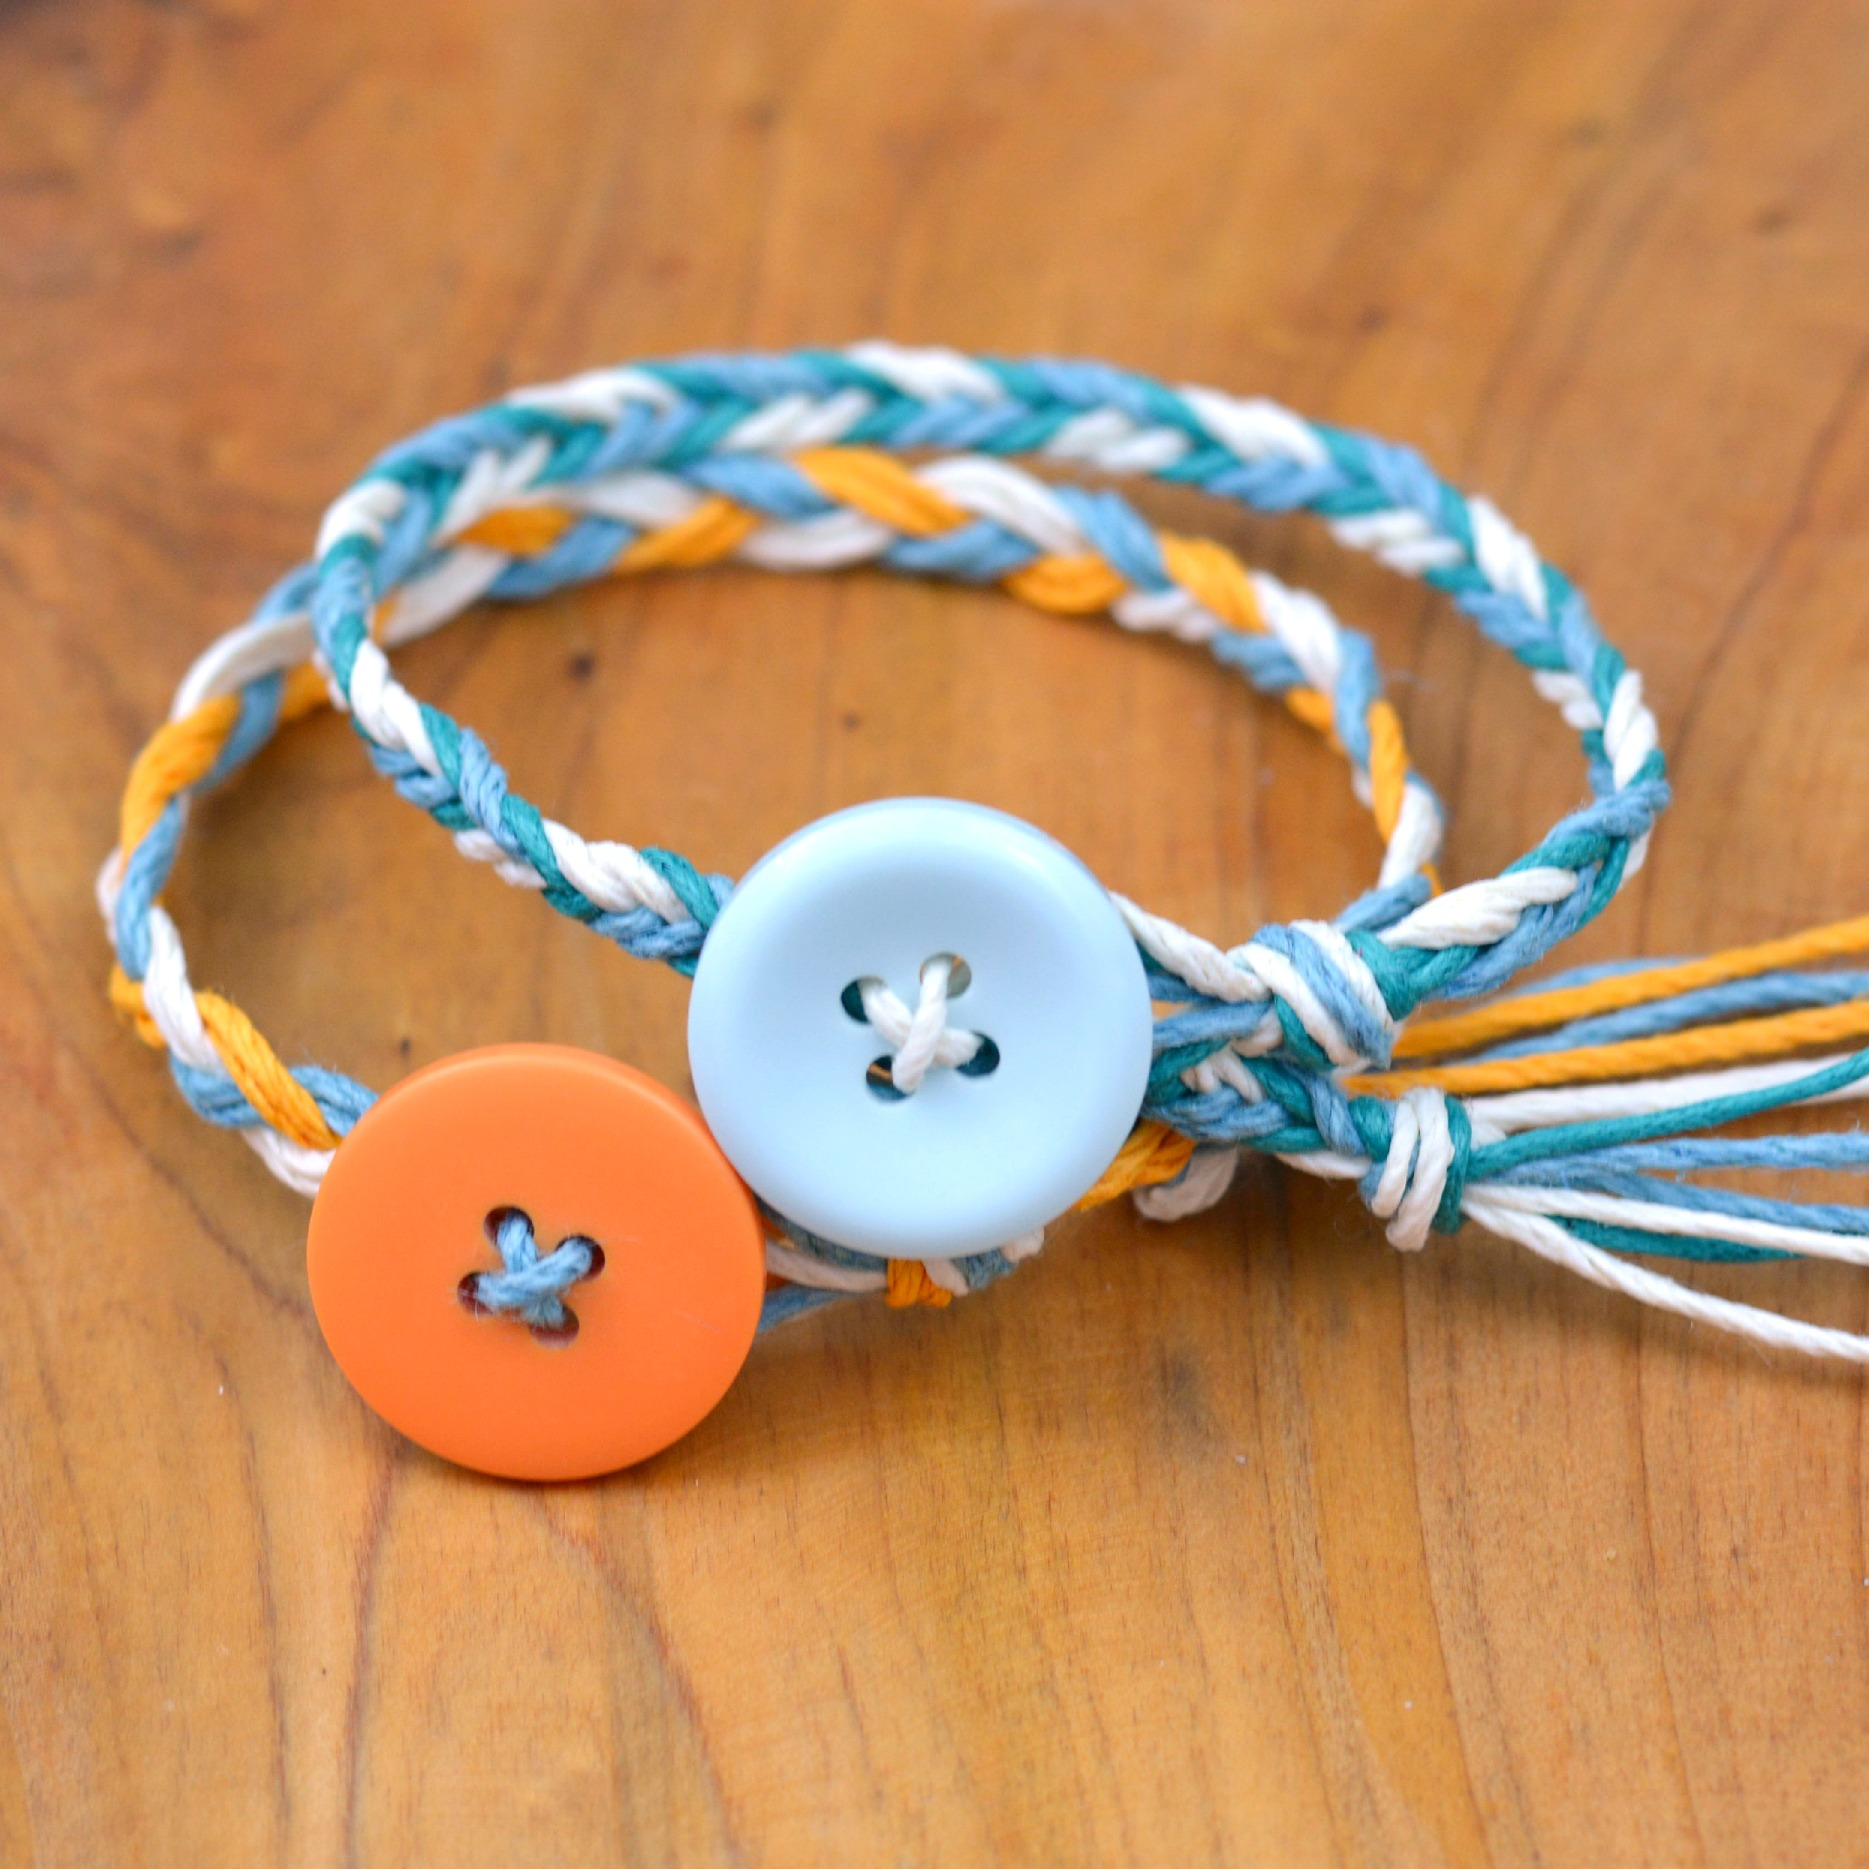 Awesome Necklace Ideas Home Remodel 24 Easy Diy From It: Ultra-Easy Friendship Bracelets